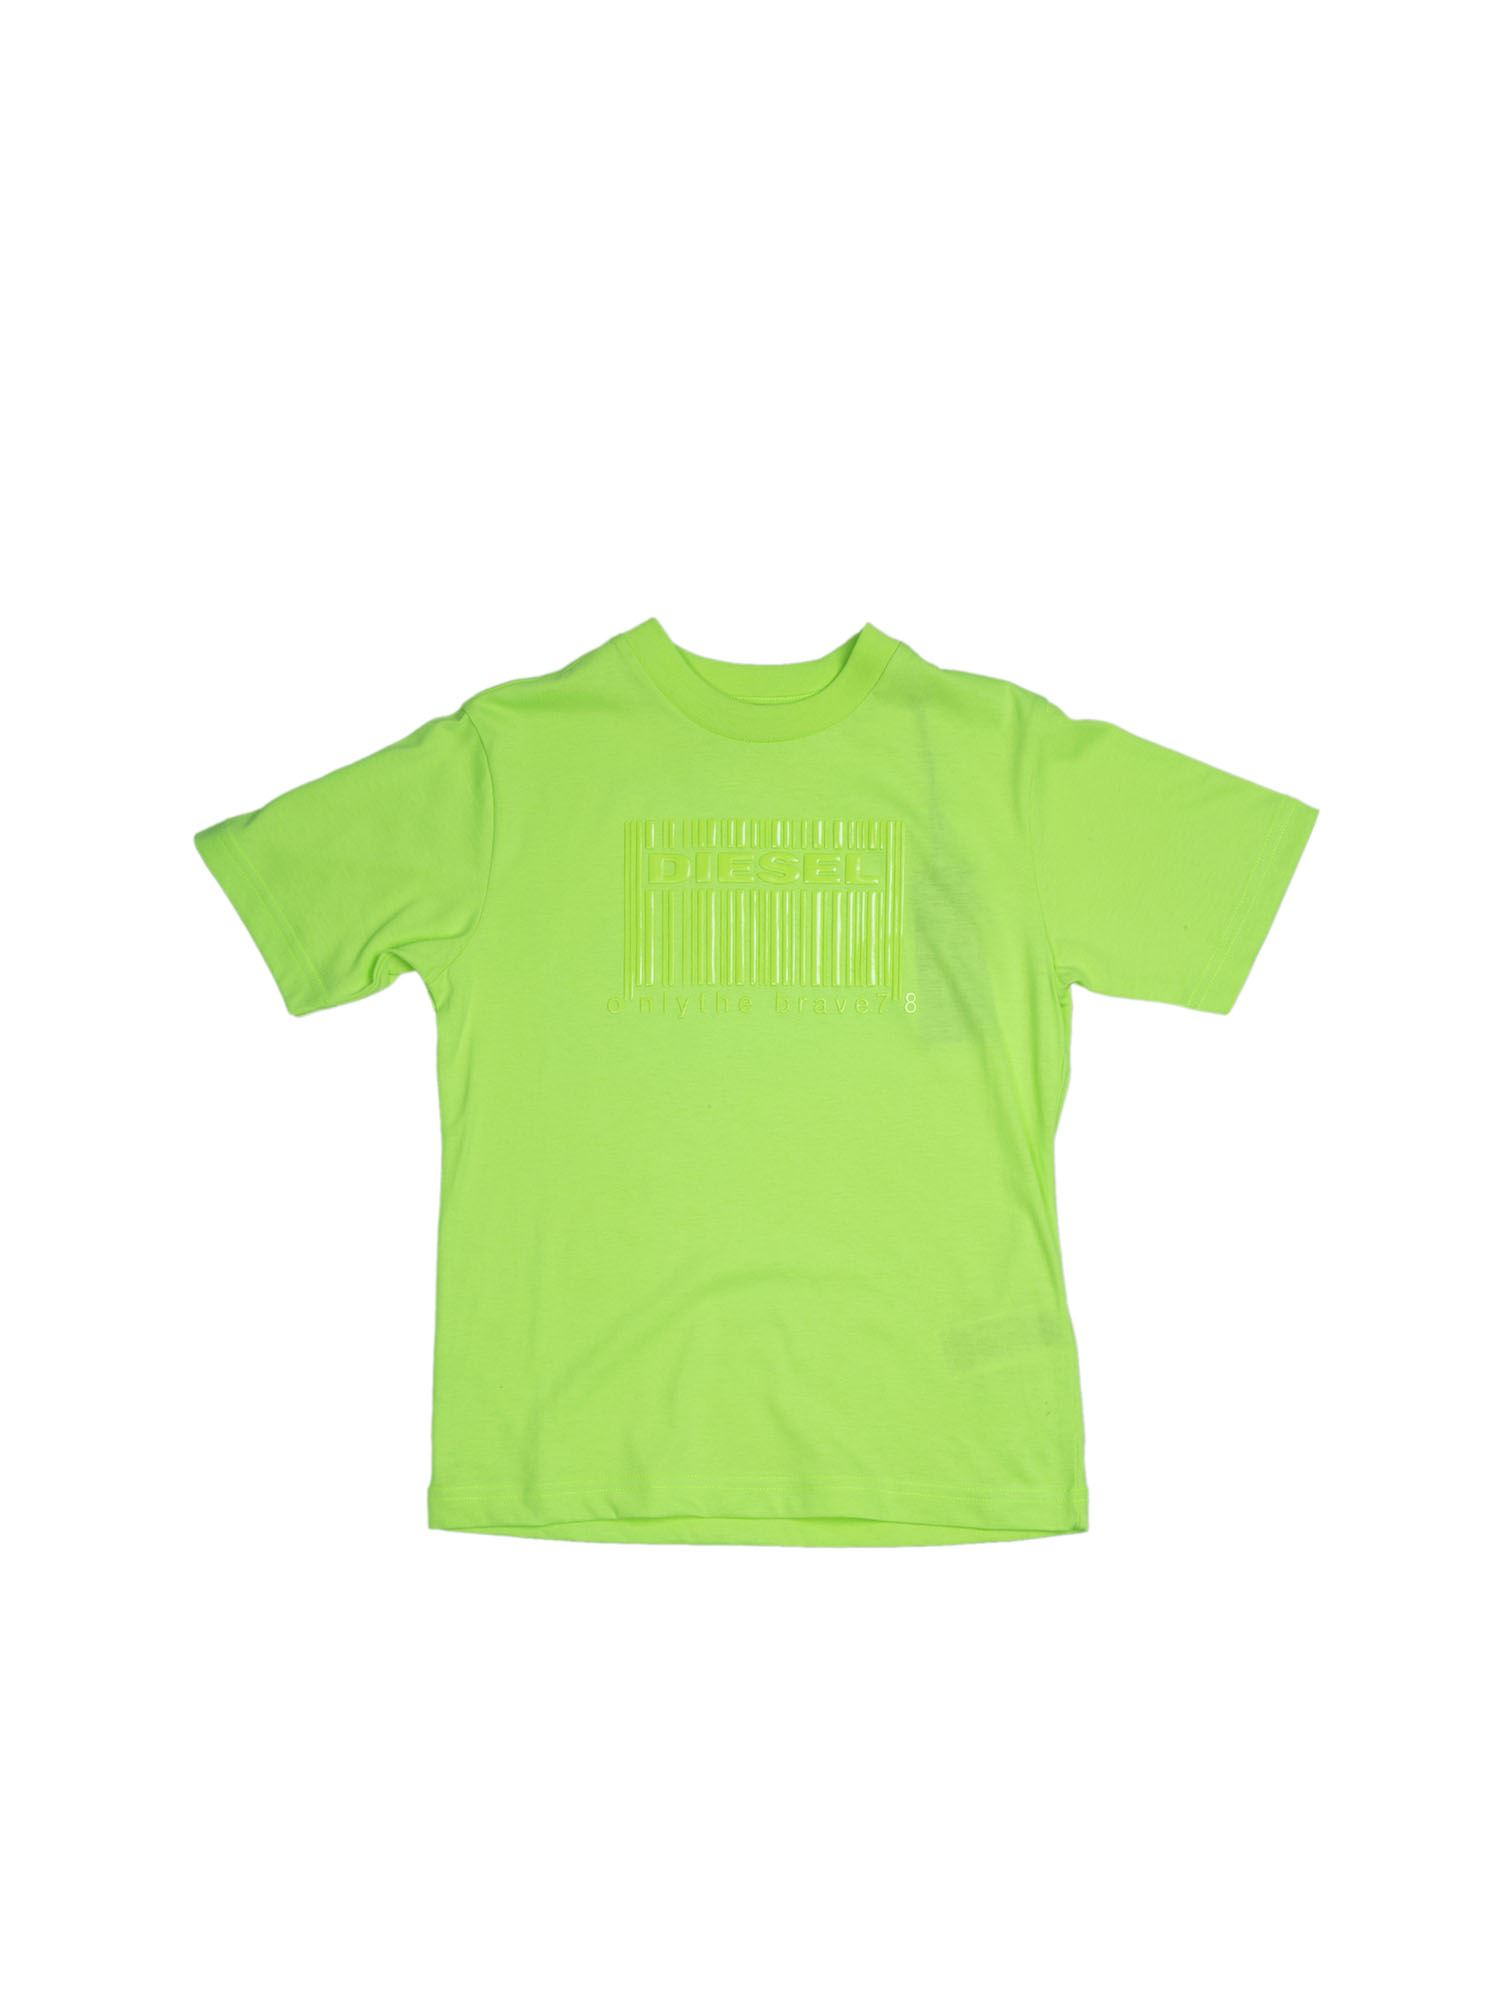 Diesel BARCODE LOGO T-SHIRT IN LIME COLOR